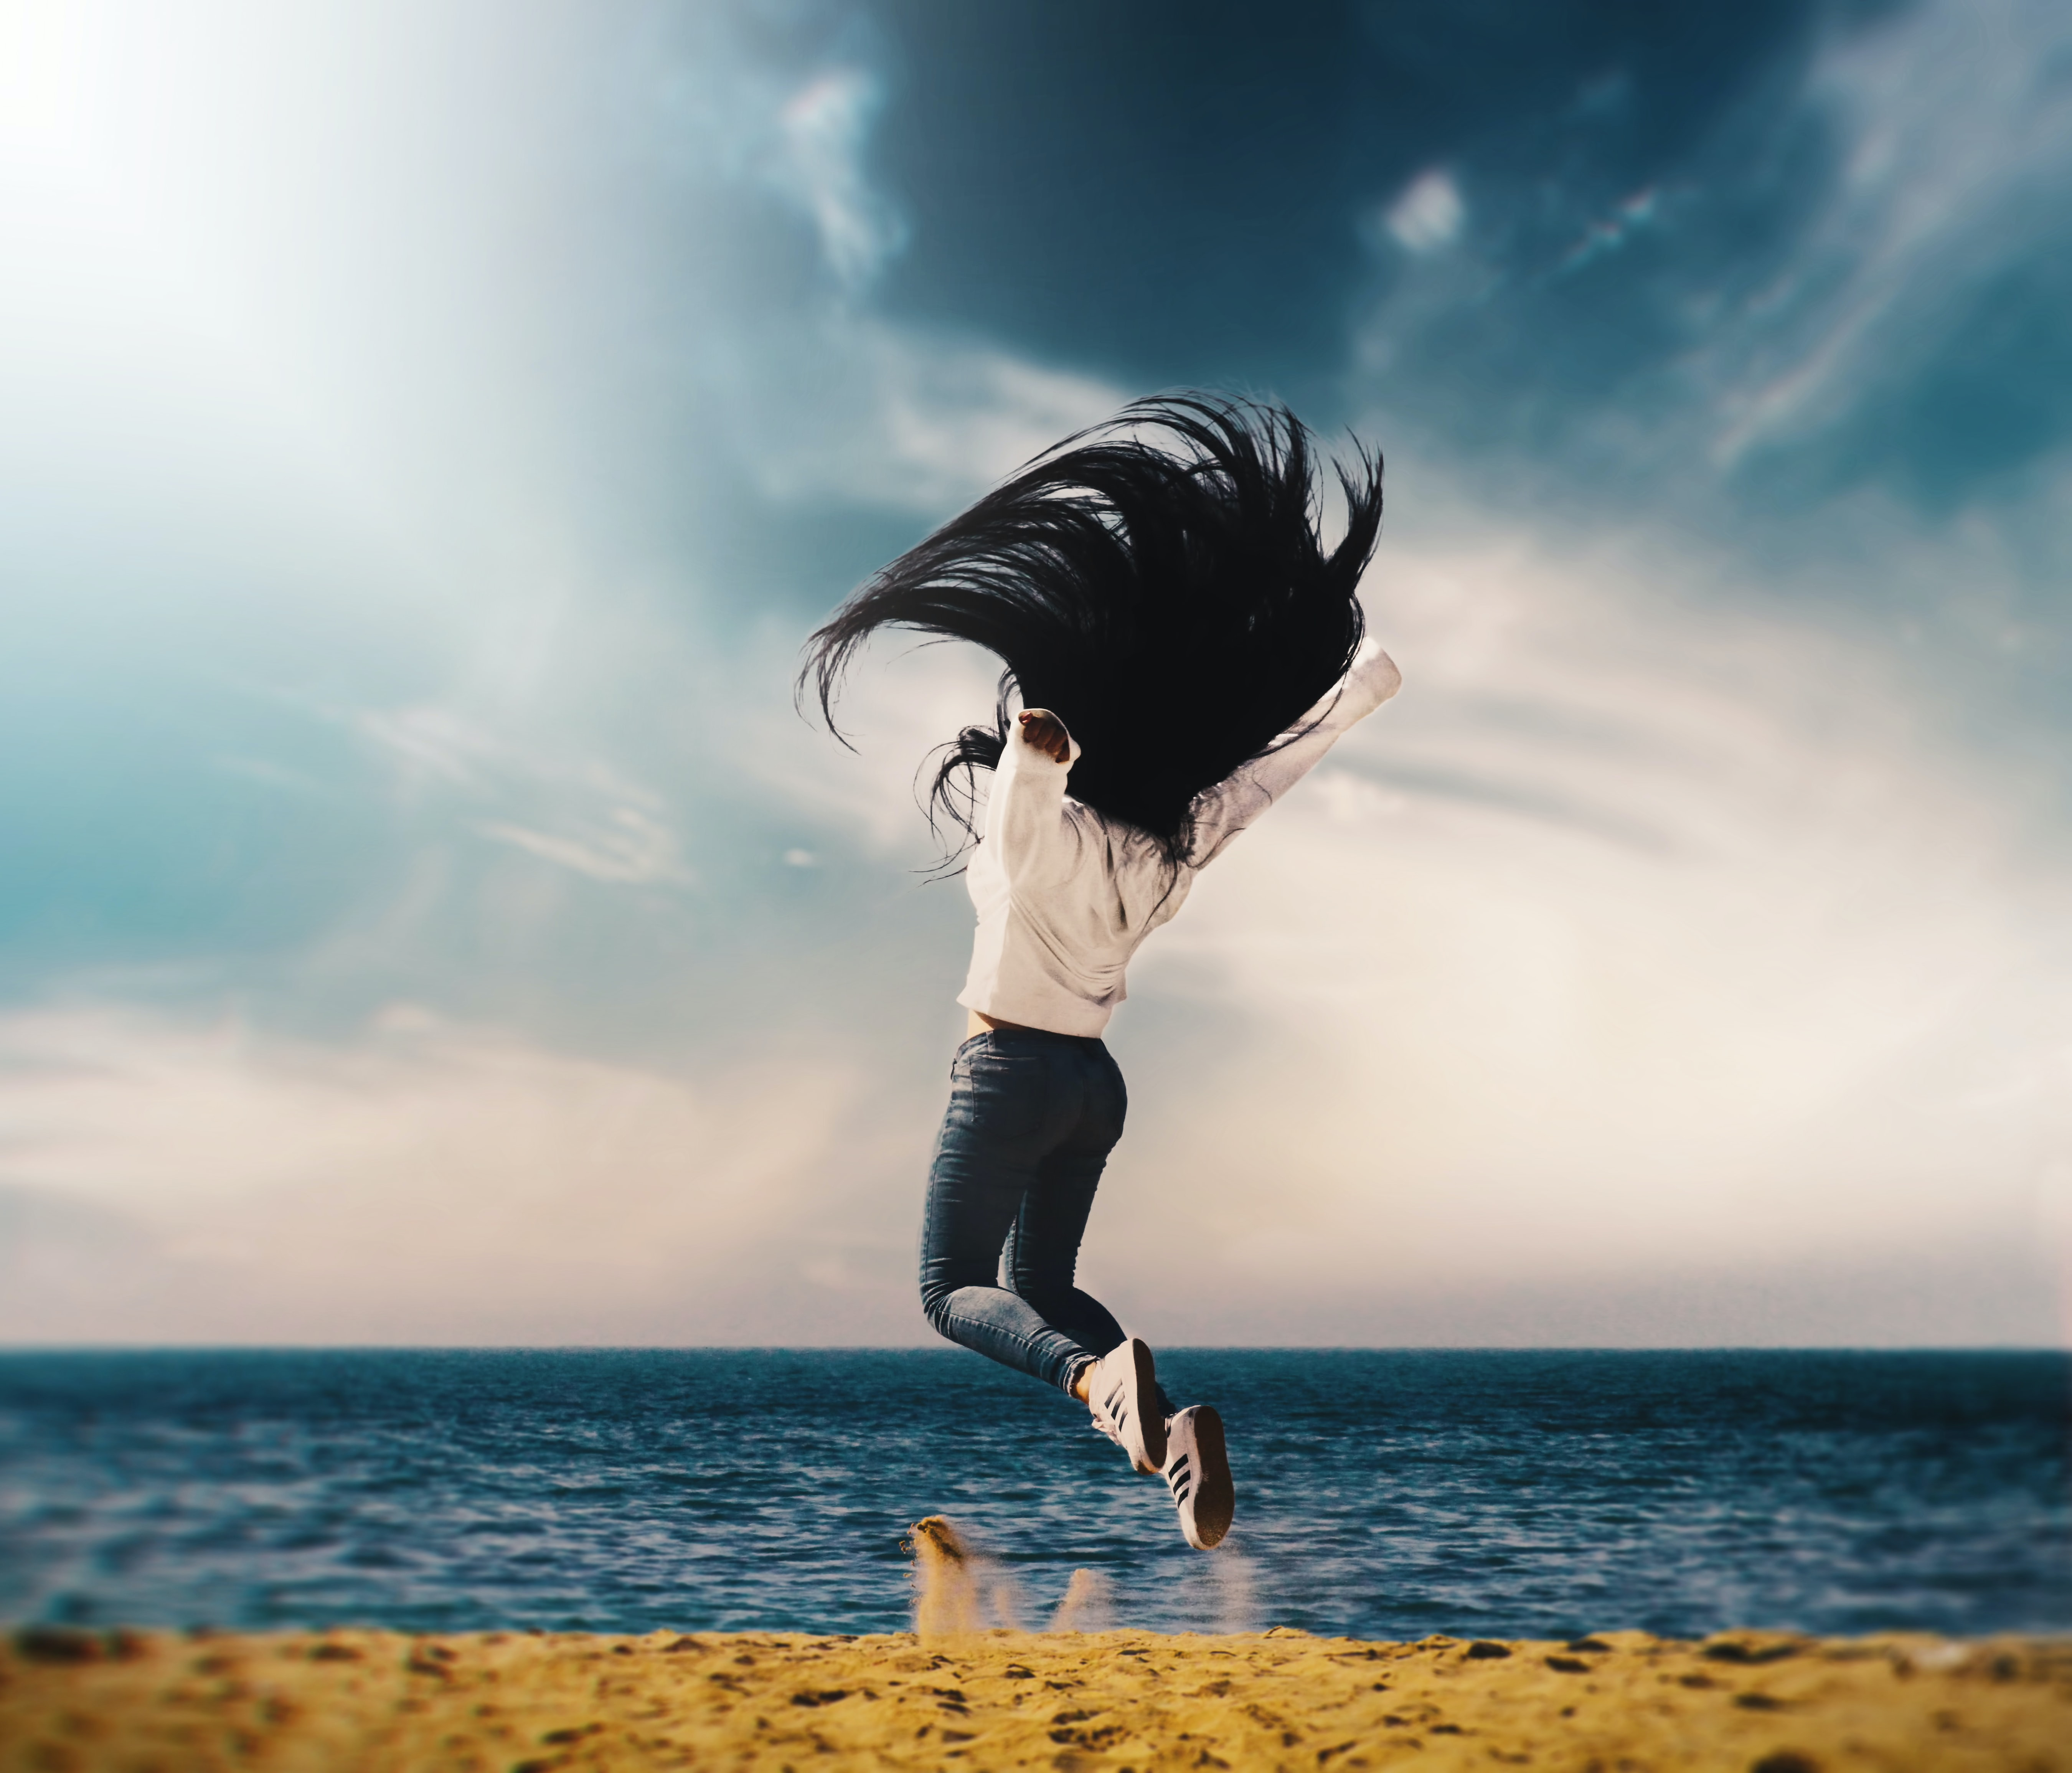 woman in white long-sleeved shirt and blue jeans jumping on seashore during daytime